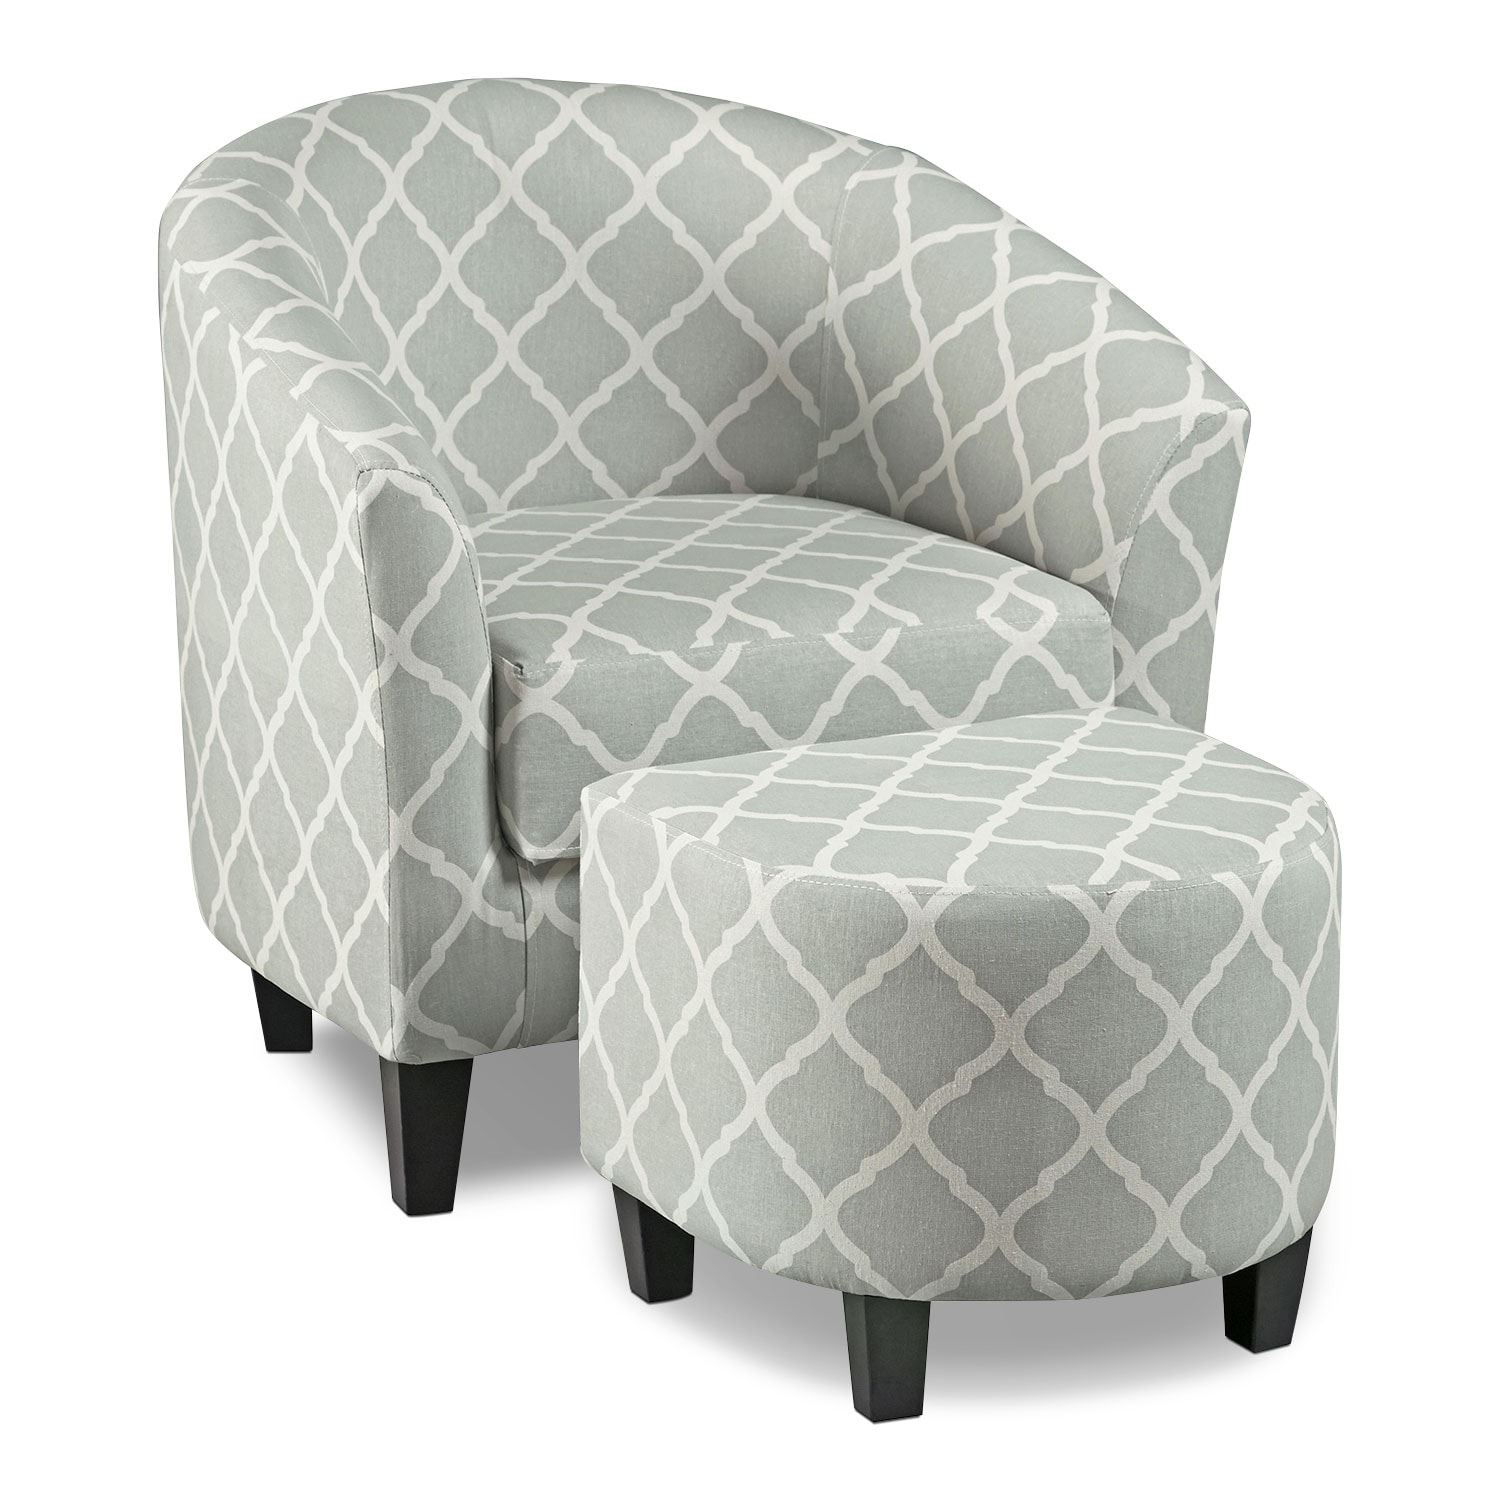 Accent Furniture For Living Room: Sperrie Accent Chair And Ottoman - Gray